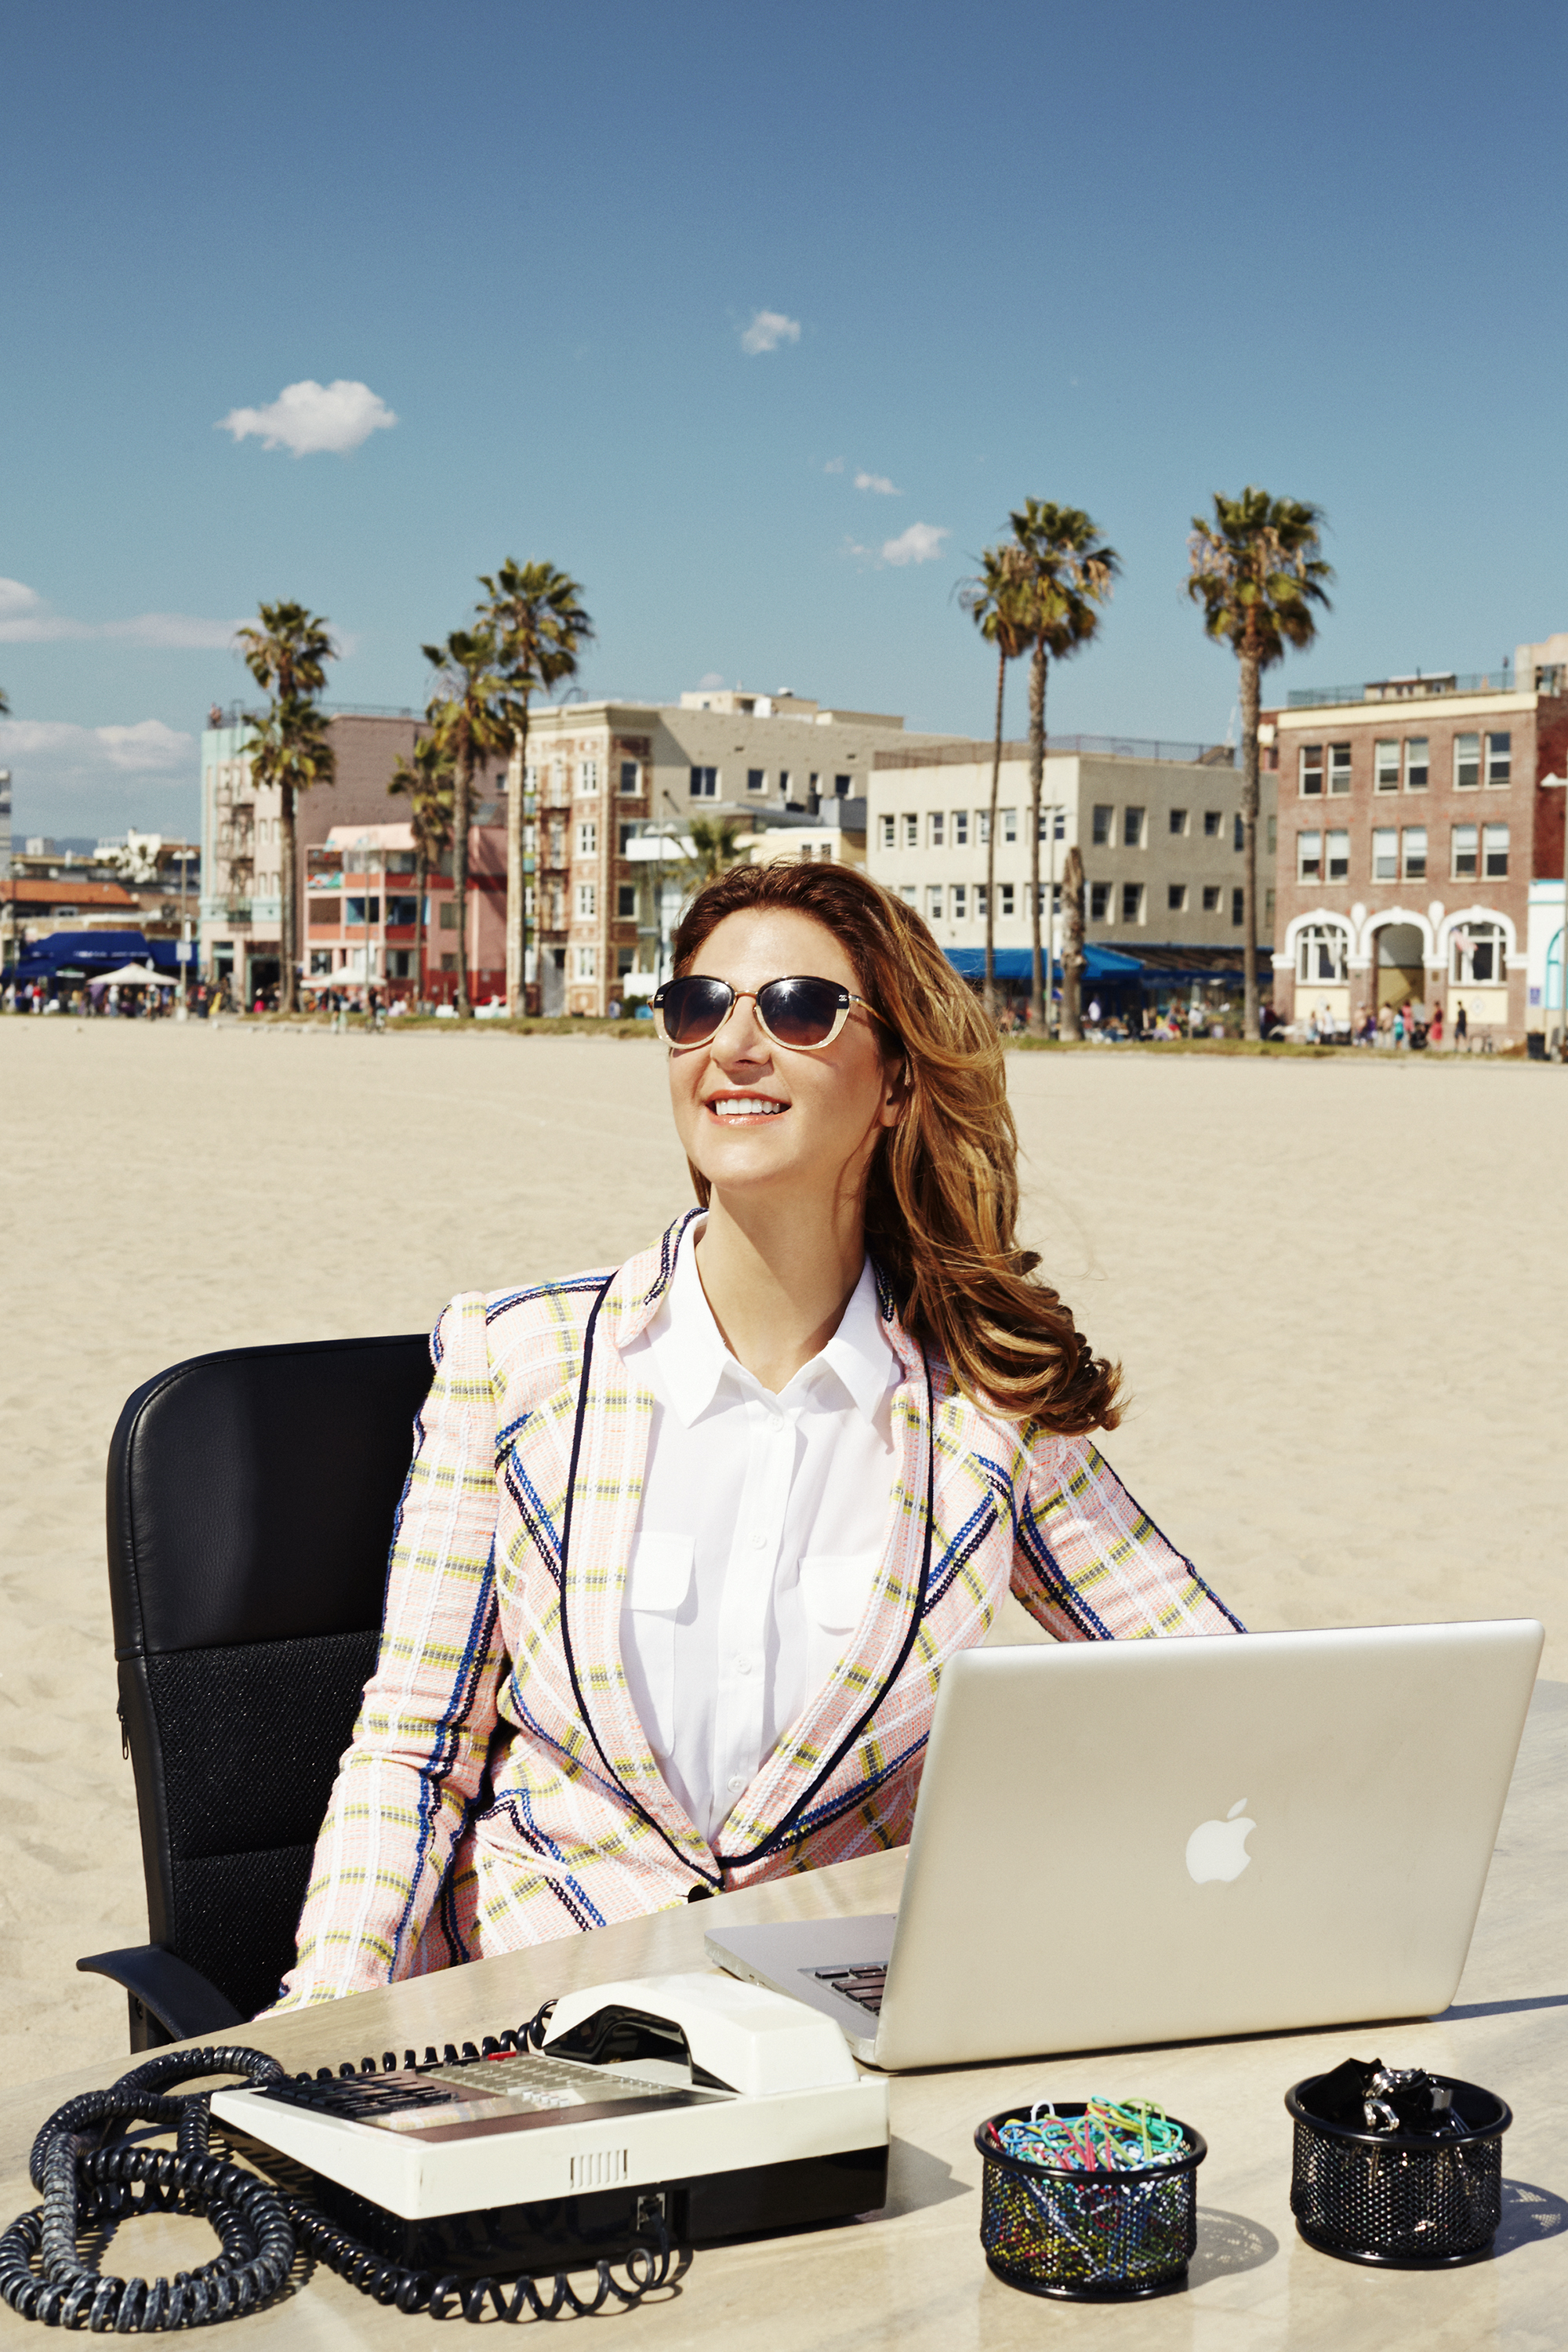 Just add water Silicon Beach entrepreneur Tracy DiNunzio, whose Santa Monica, Calif.–based startup is actually located a few blocks from the sand